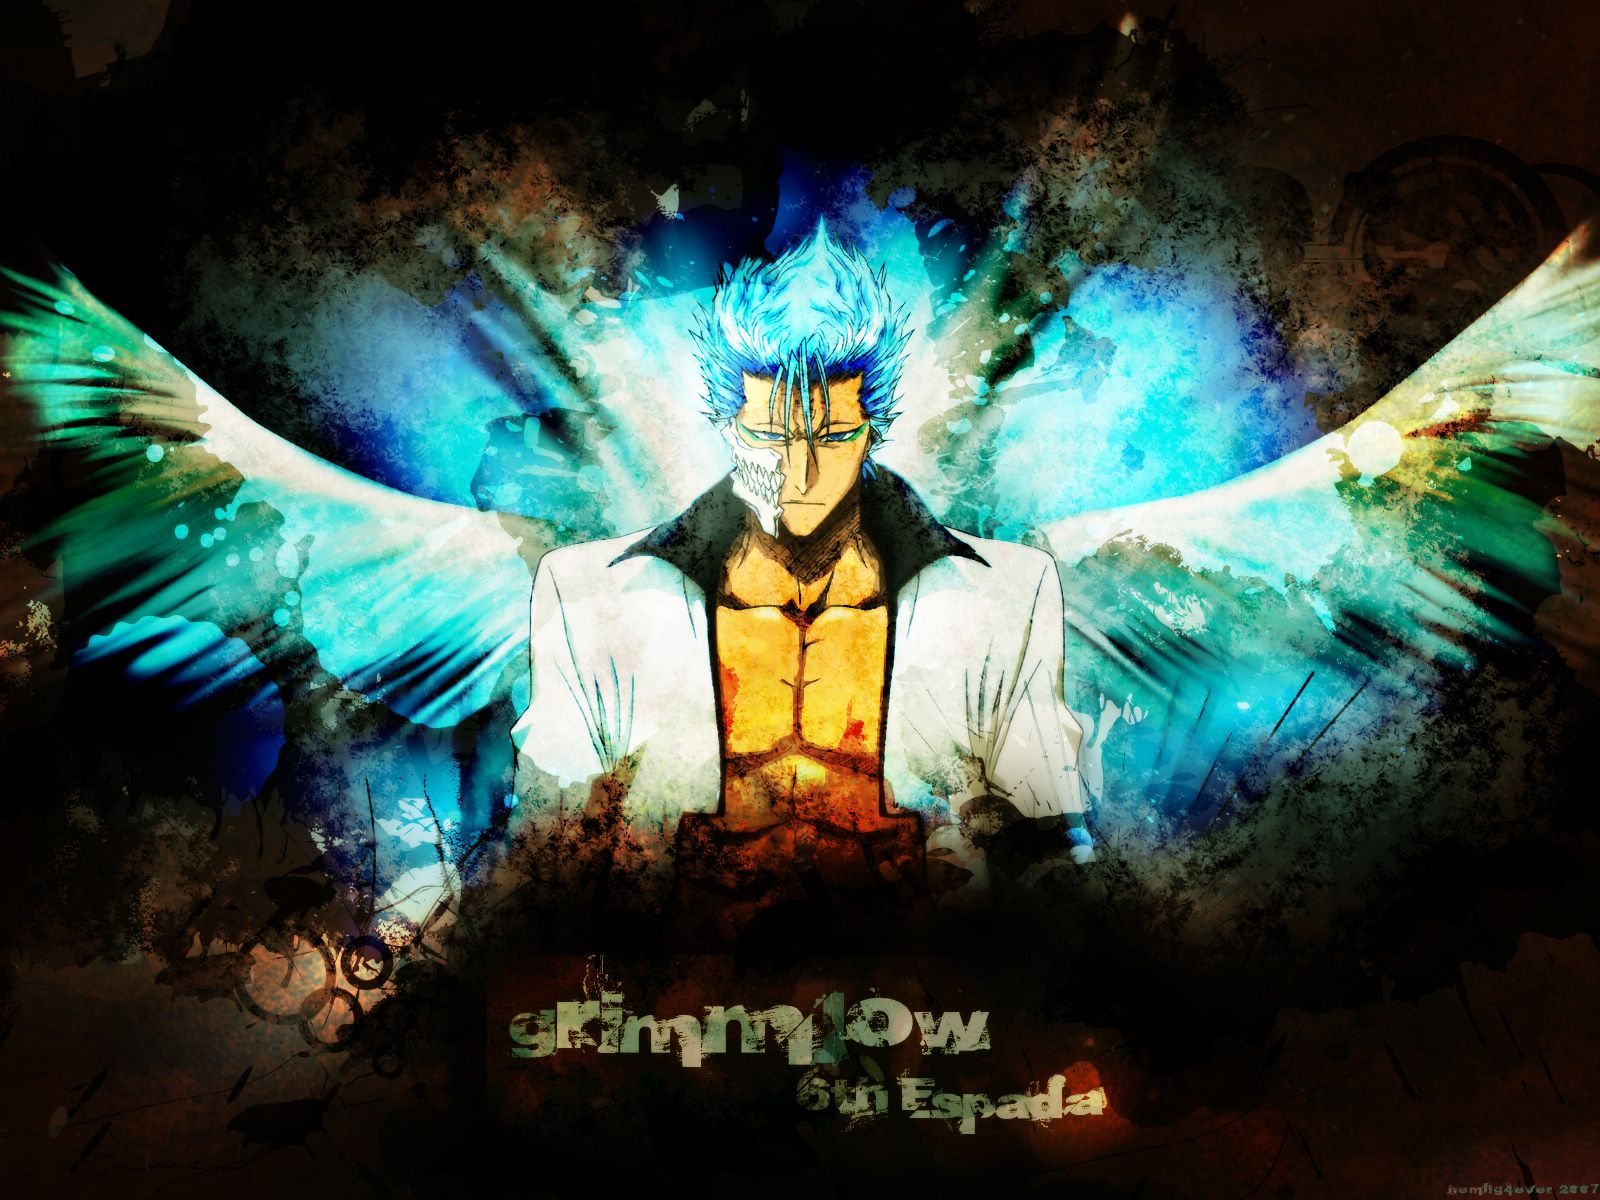 Grimmjow: Bleach 6th Espada | Bleach anime, Anime images, Anime